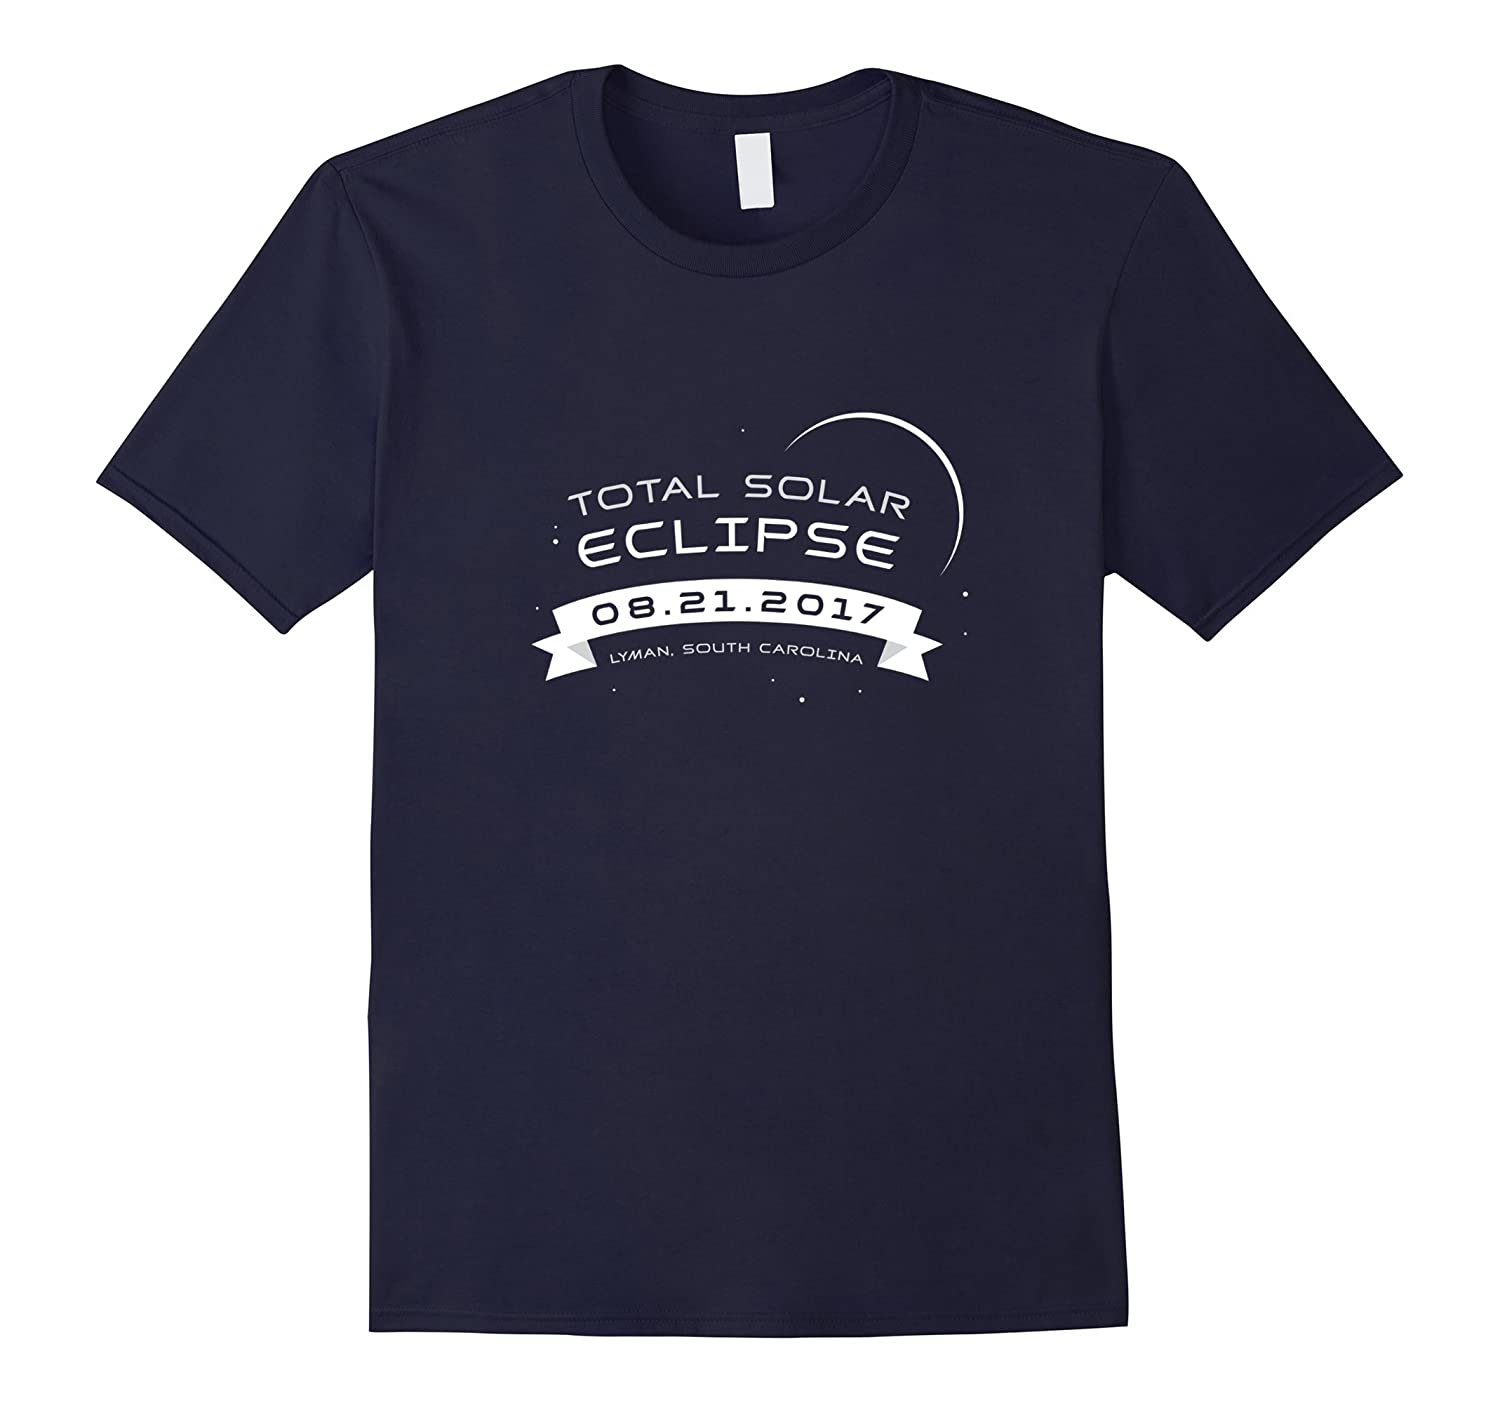 Total Solar Eclipse 2017 Shirt Lyman South Carolina-Vaci